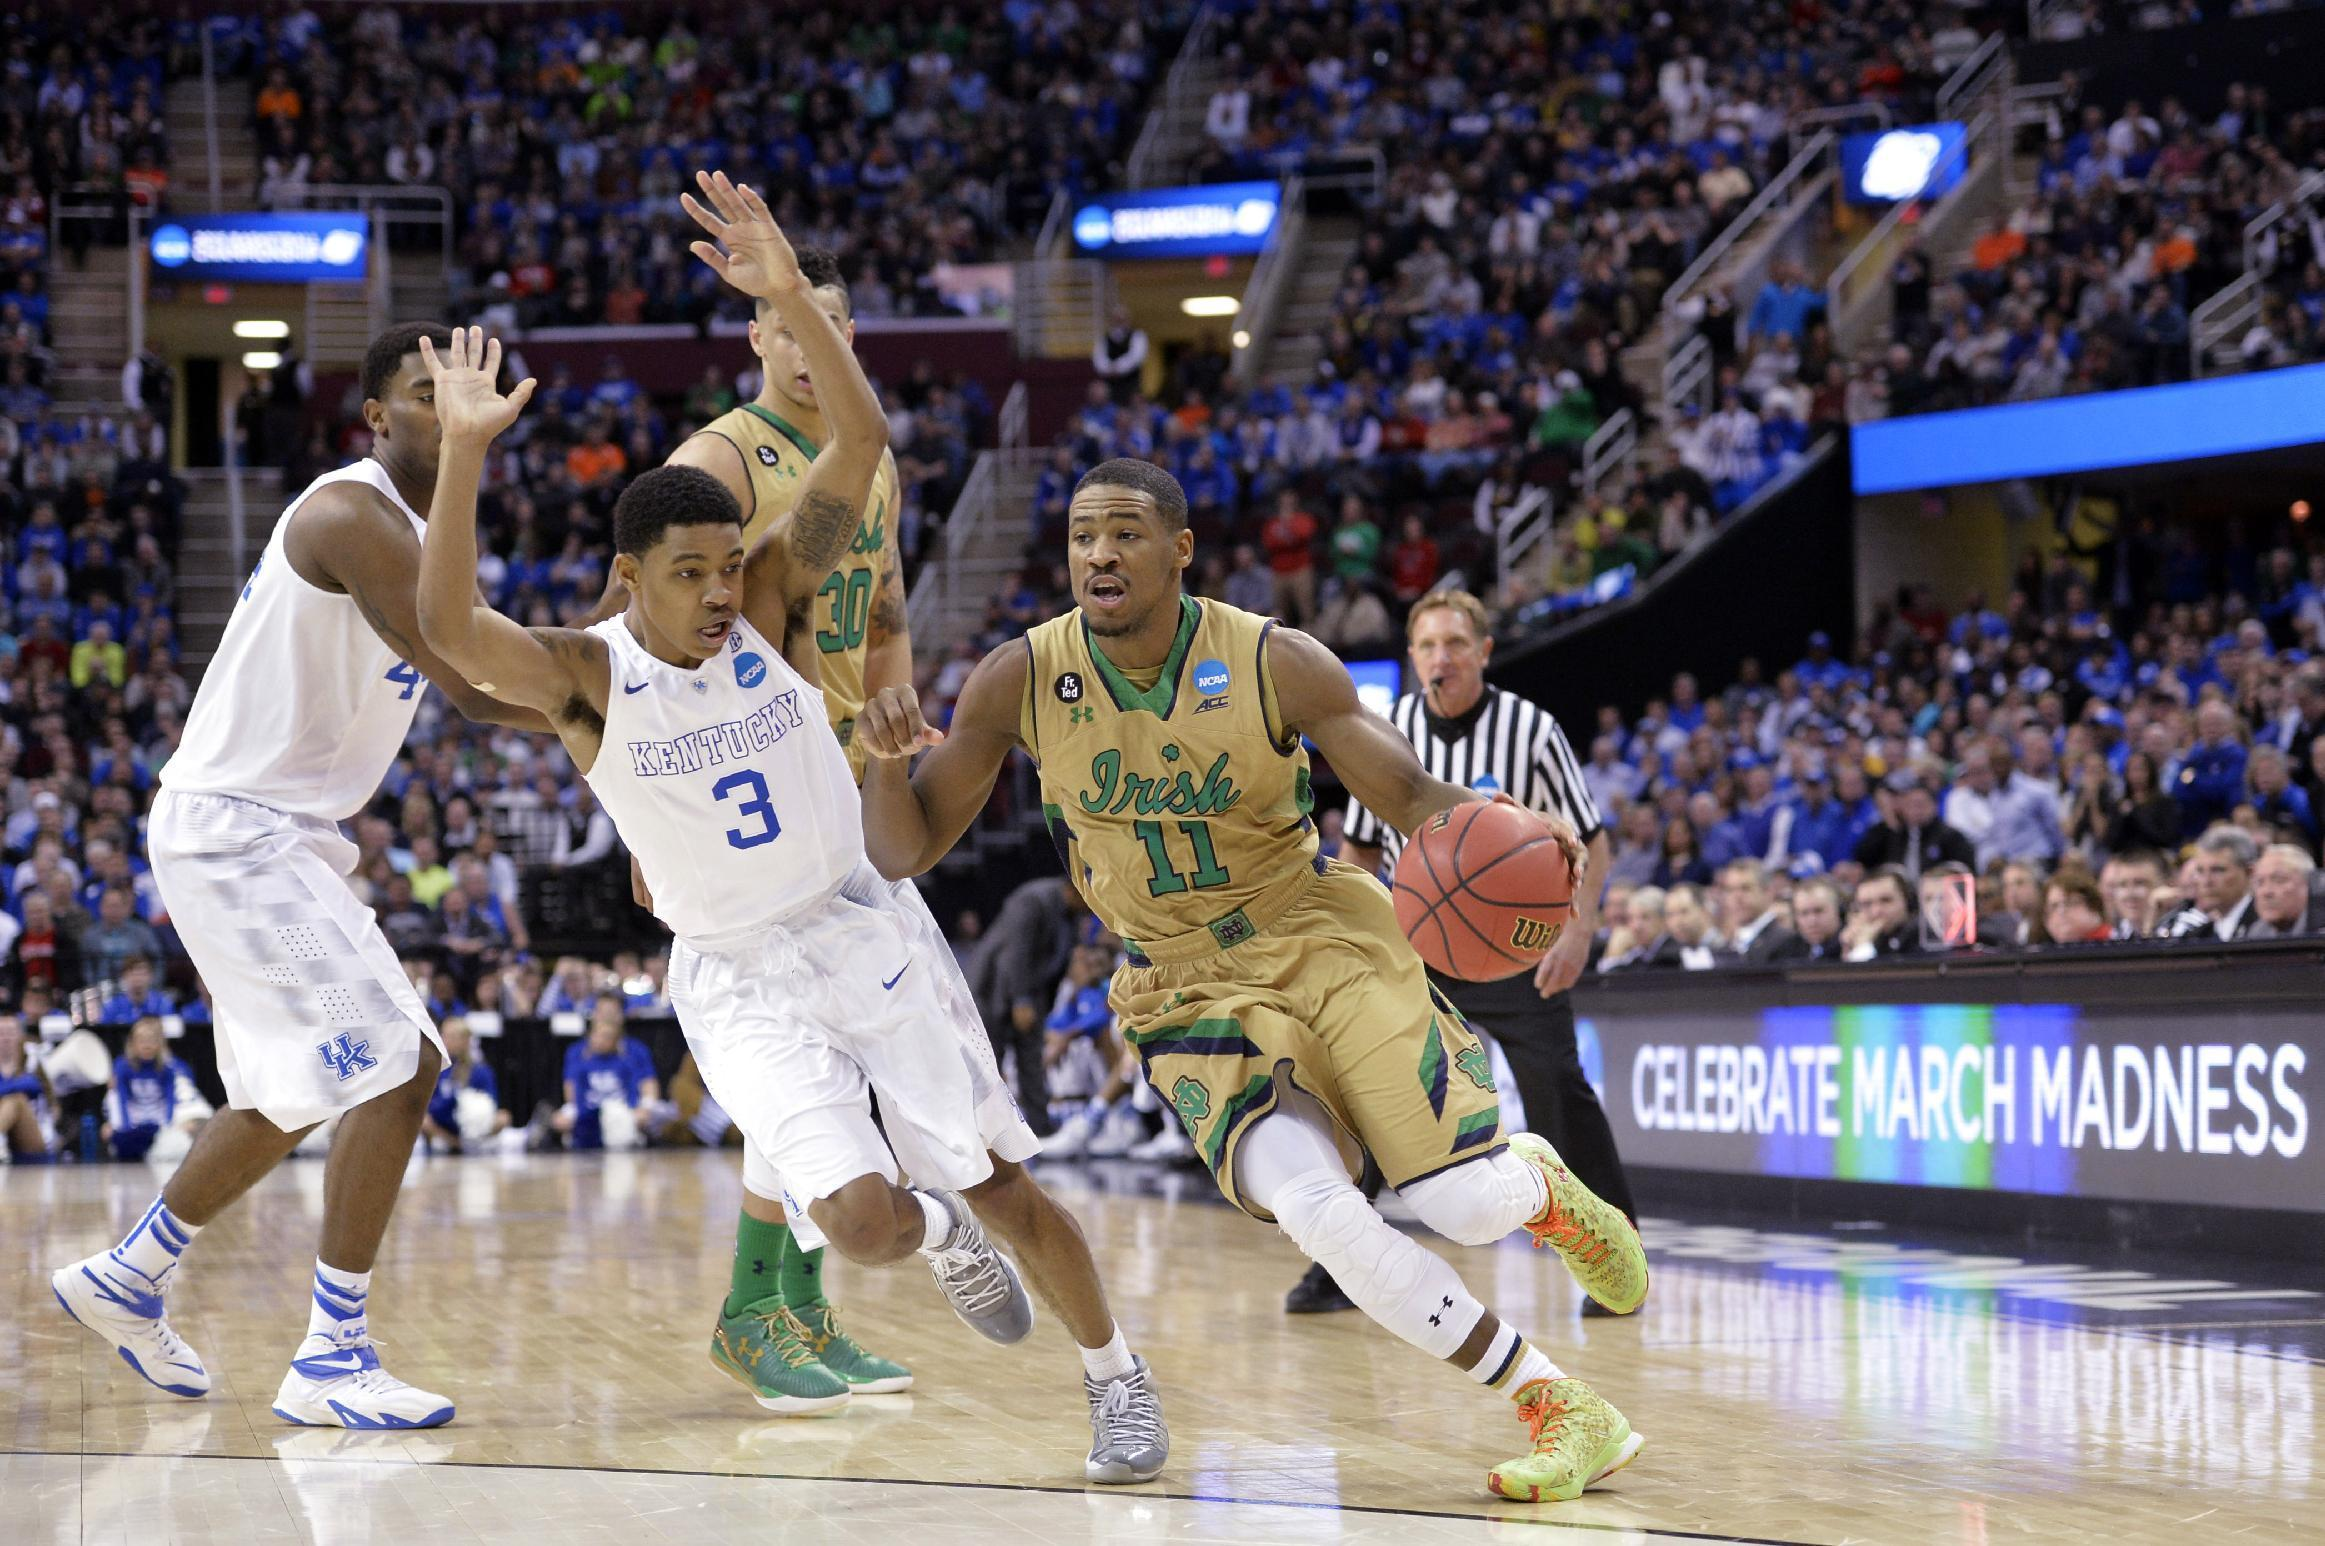 Notre Dame's memorable season ends with heartbreaking loss